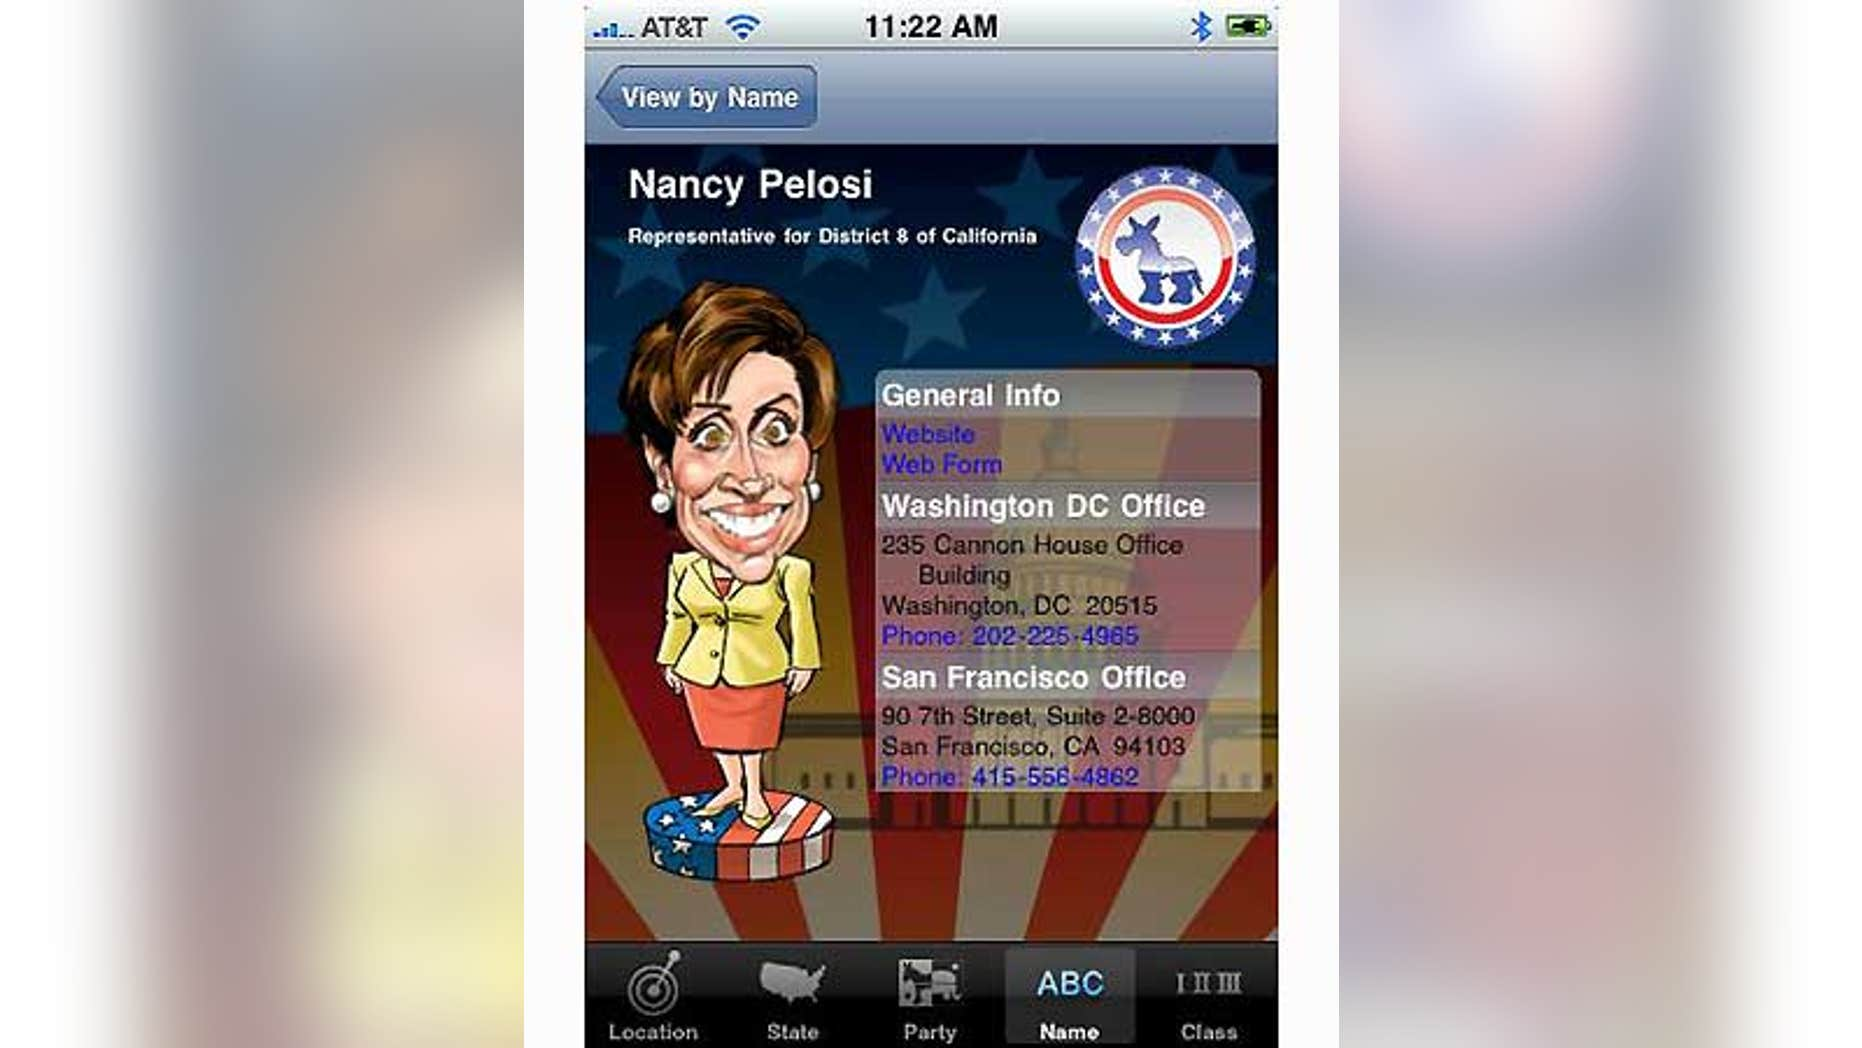 A conservative filmmaker in Hollywood thought he had developed a worthwhile iPhone app: a telephone directory listing every U.S. senator and congressman, with caricatures of the legislators drawn by an artist.